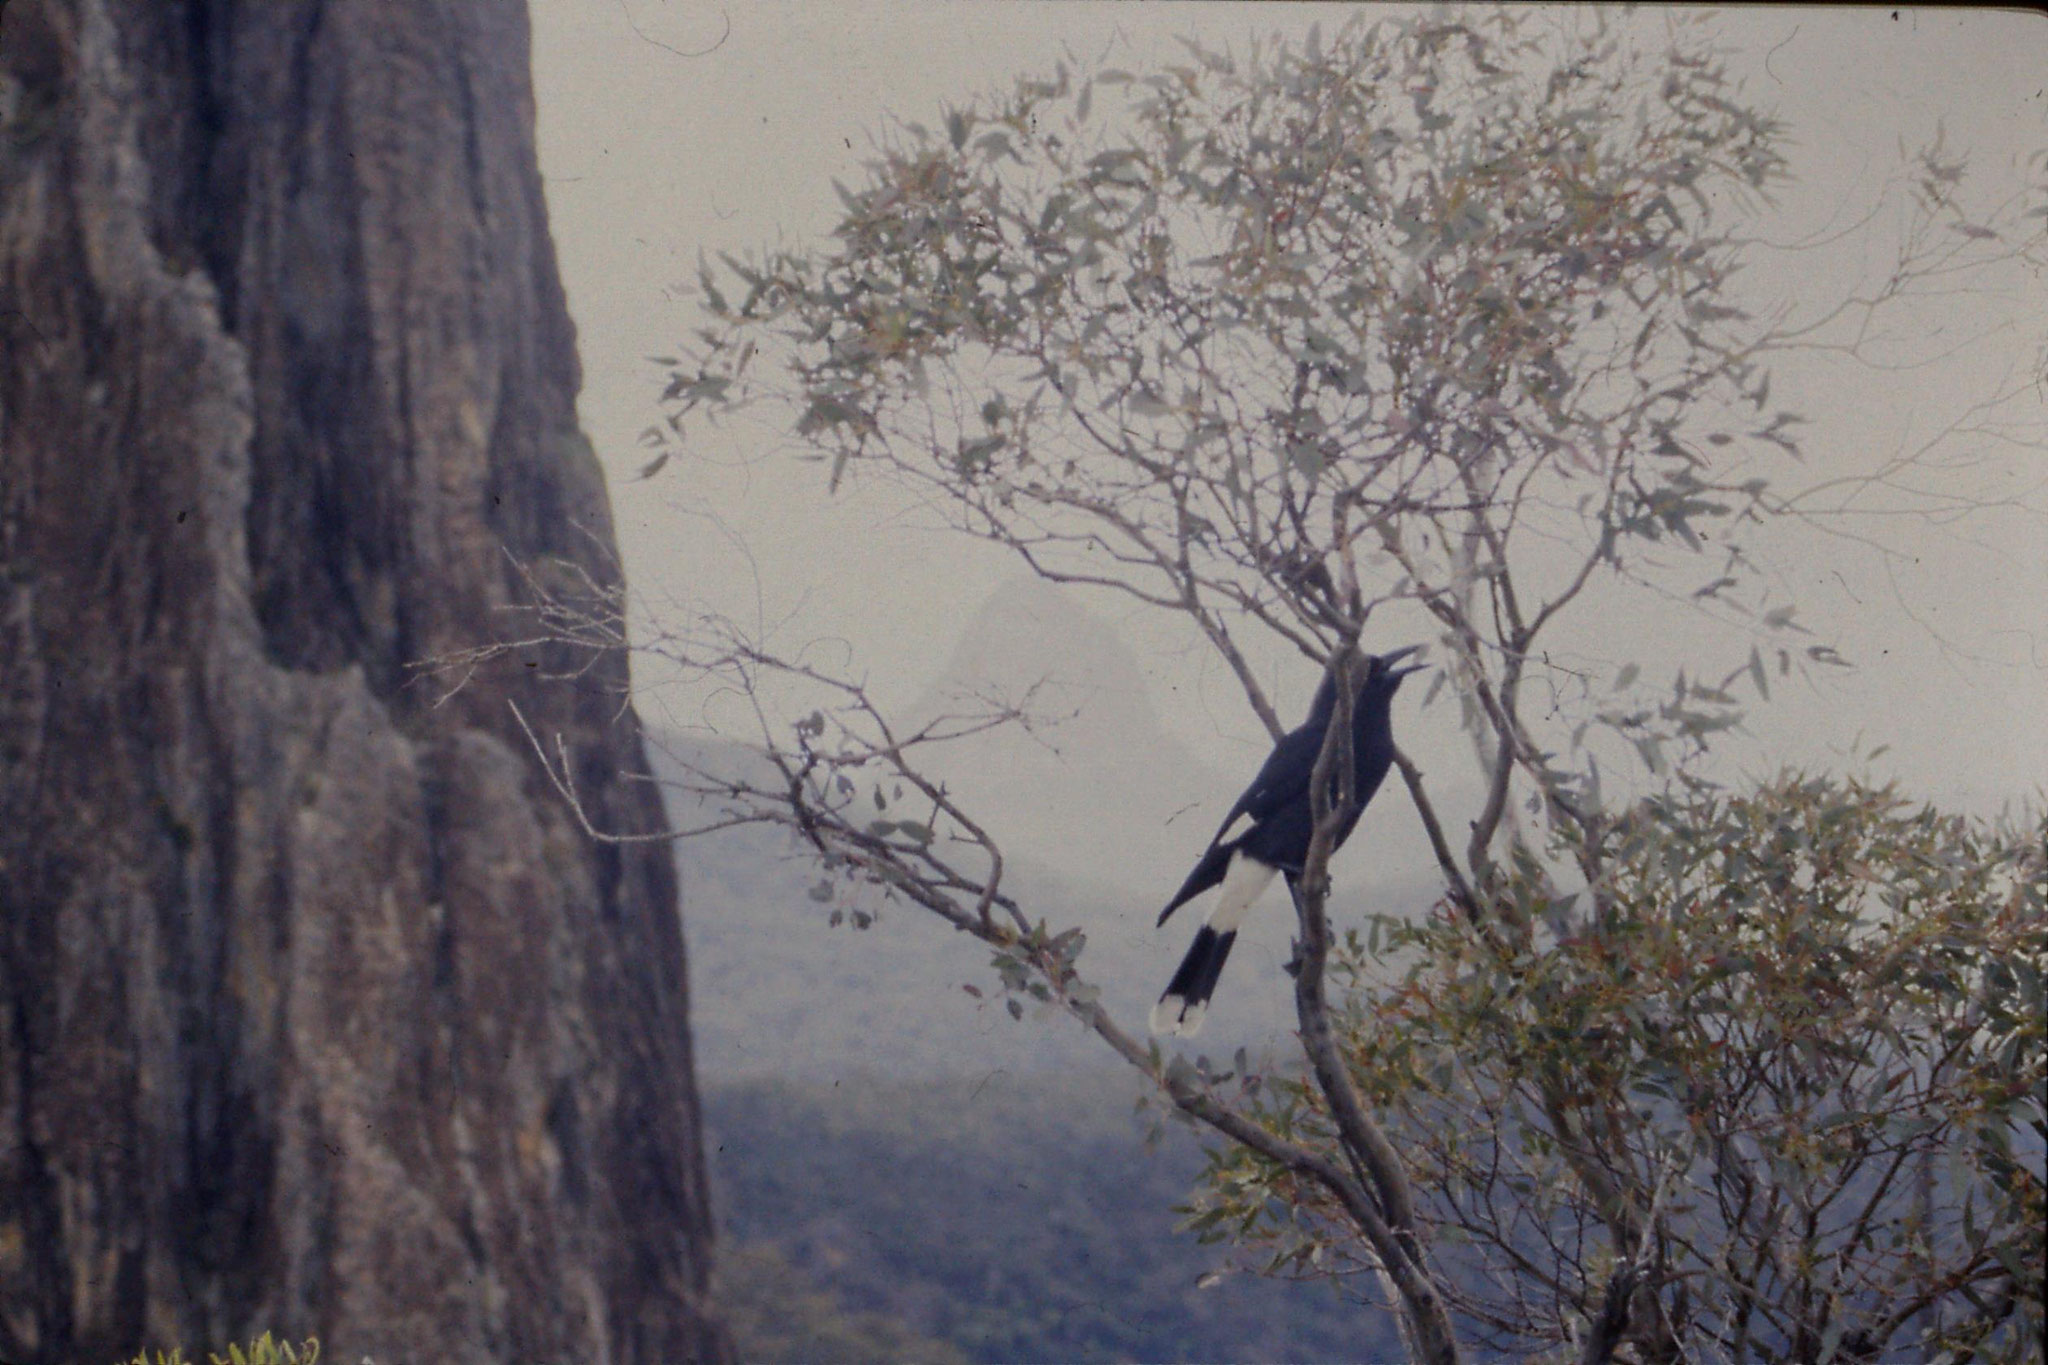 8/10/1990: 29: Warrumbingle Nat. Pk., pied currawong who followed us along path